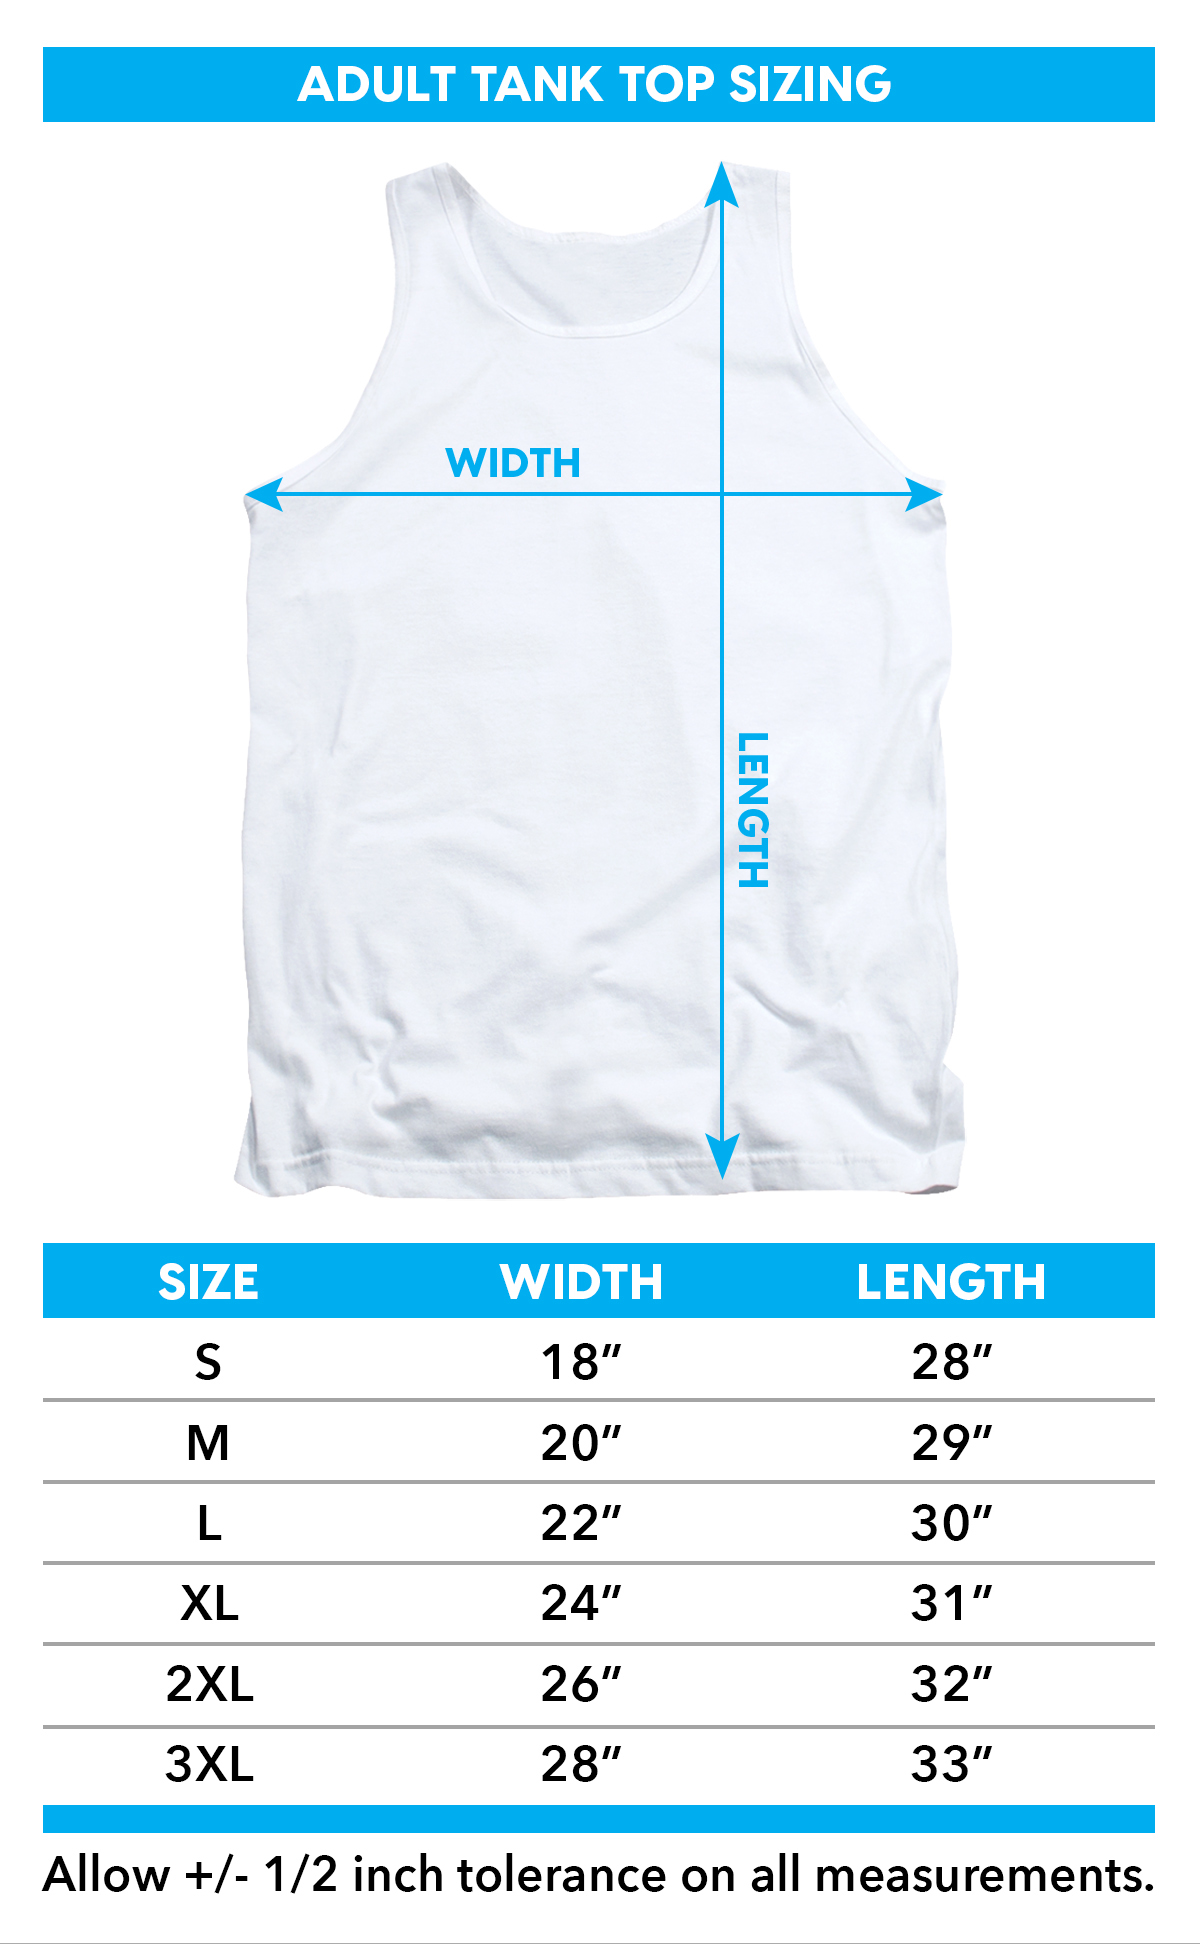 Sizing chart for Zoolander Tank Top - Rediculously Good Looking TRV-PAR251-TK